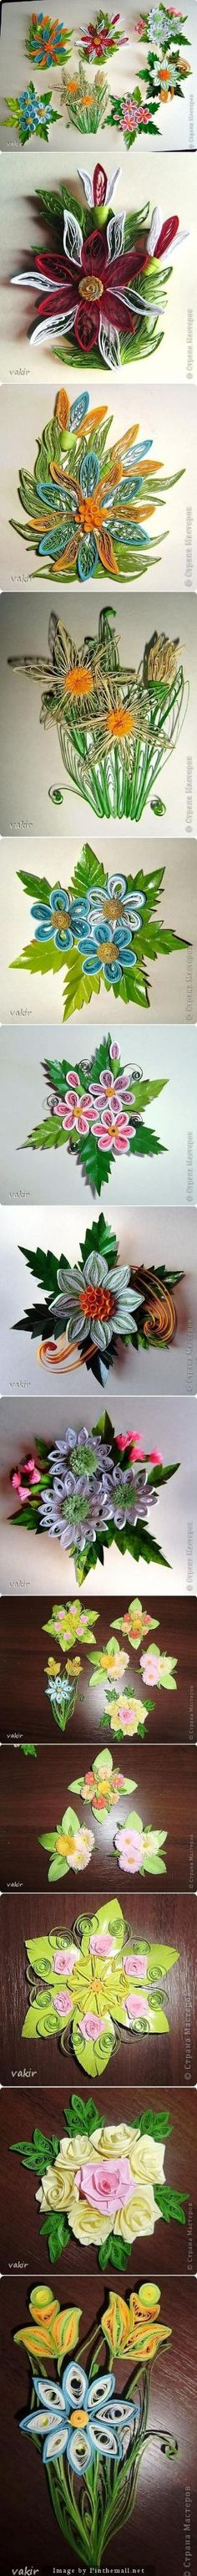 Quilled flowers by Safyre